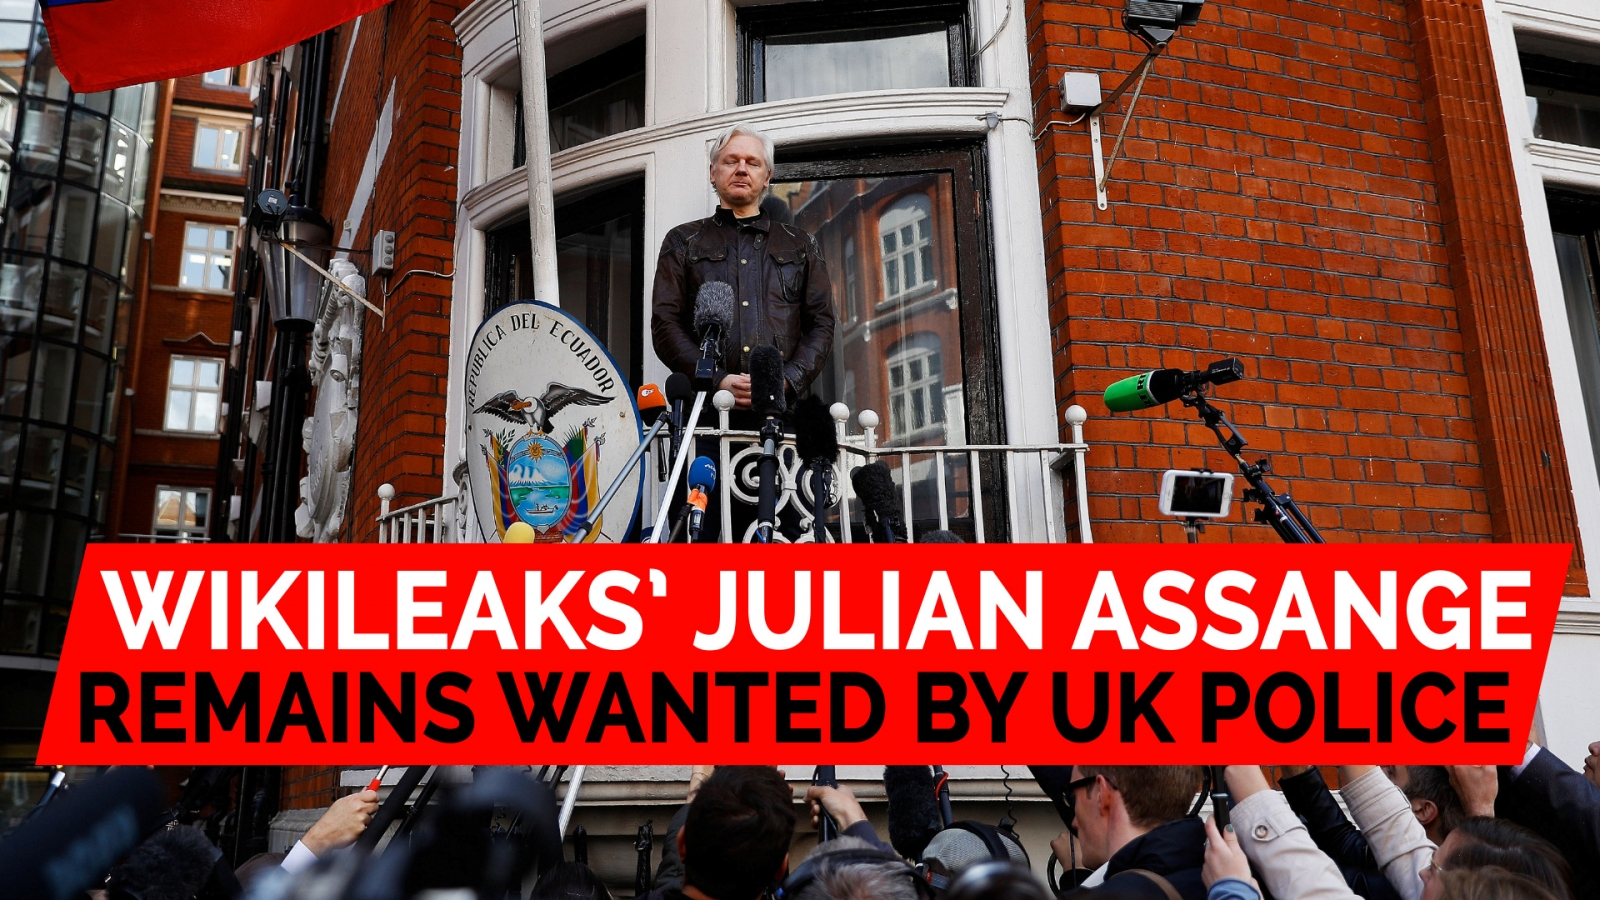 wikileaks-julian-assange-remains-wanted-by-uk-police-despite-dropped-rape-investigation-by-sweden